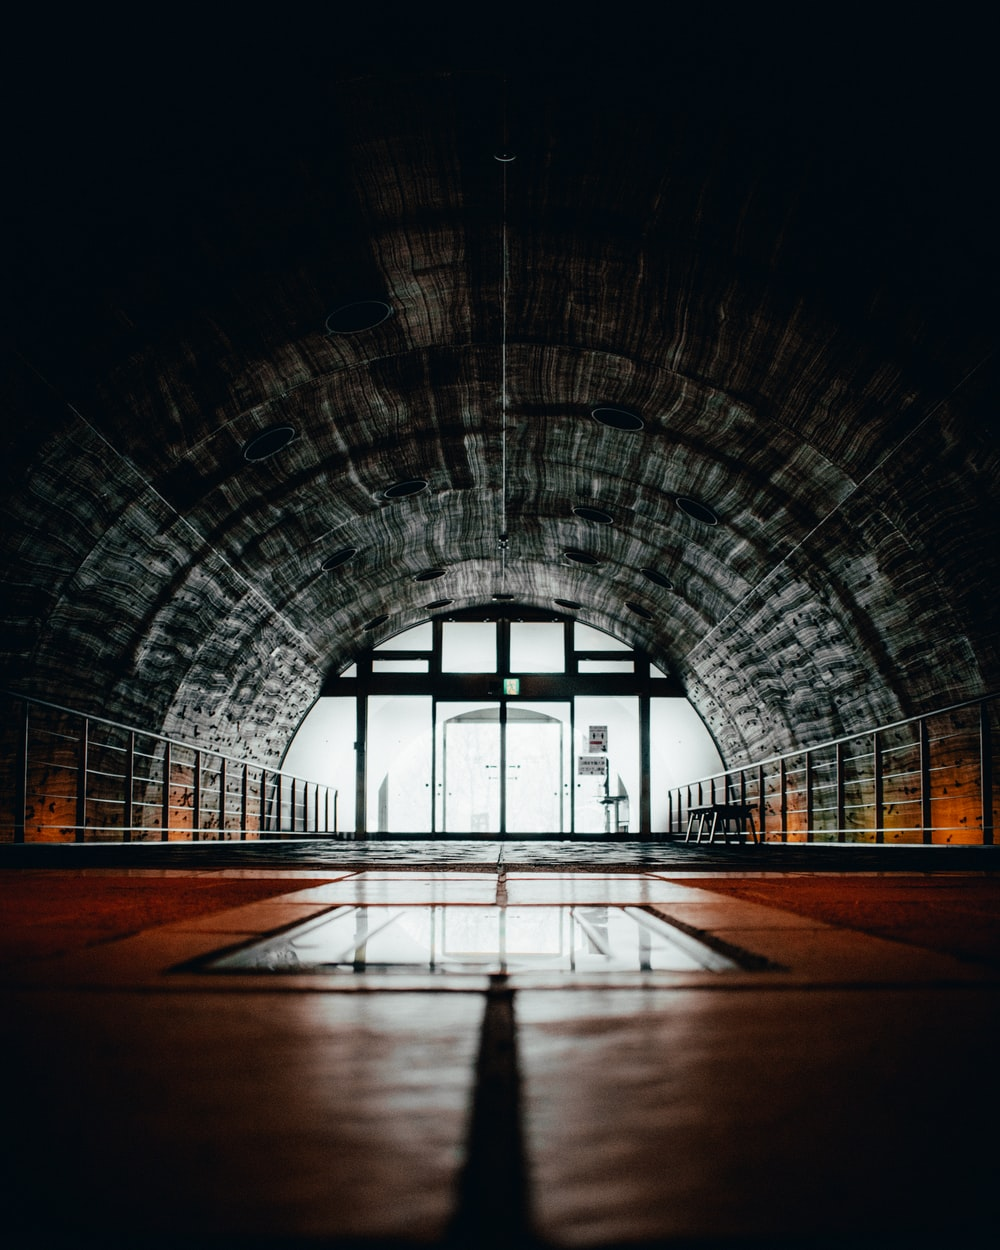 brown and gray tunnel with glass windows